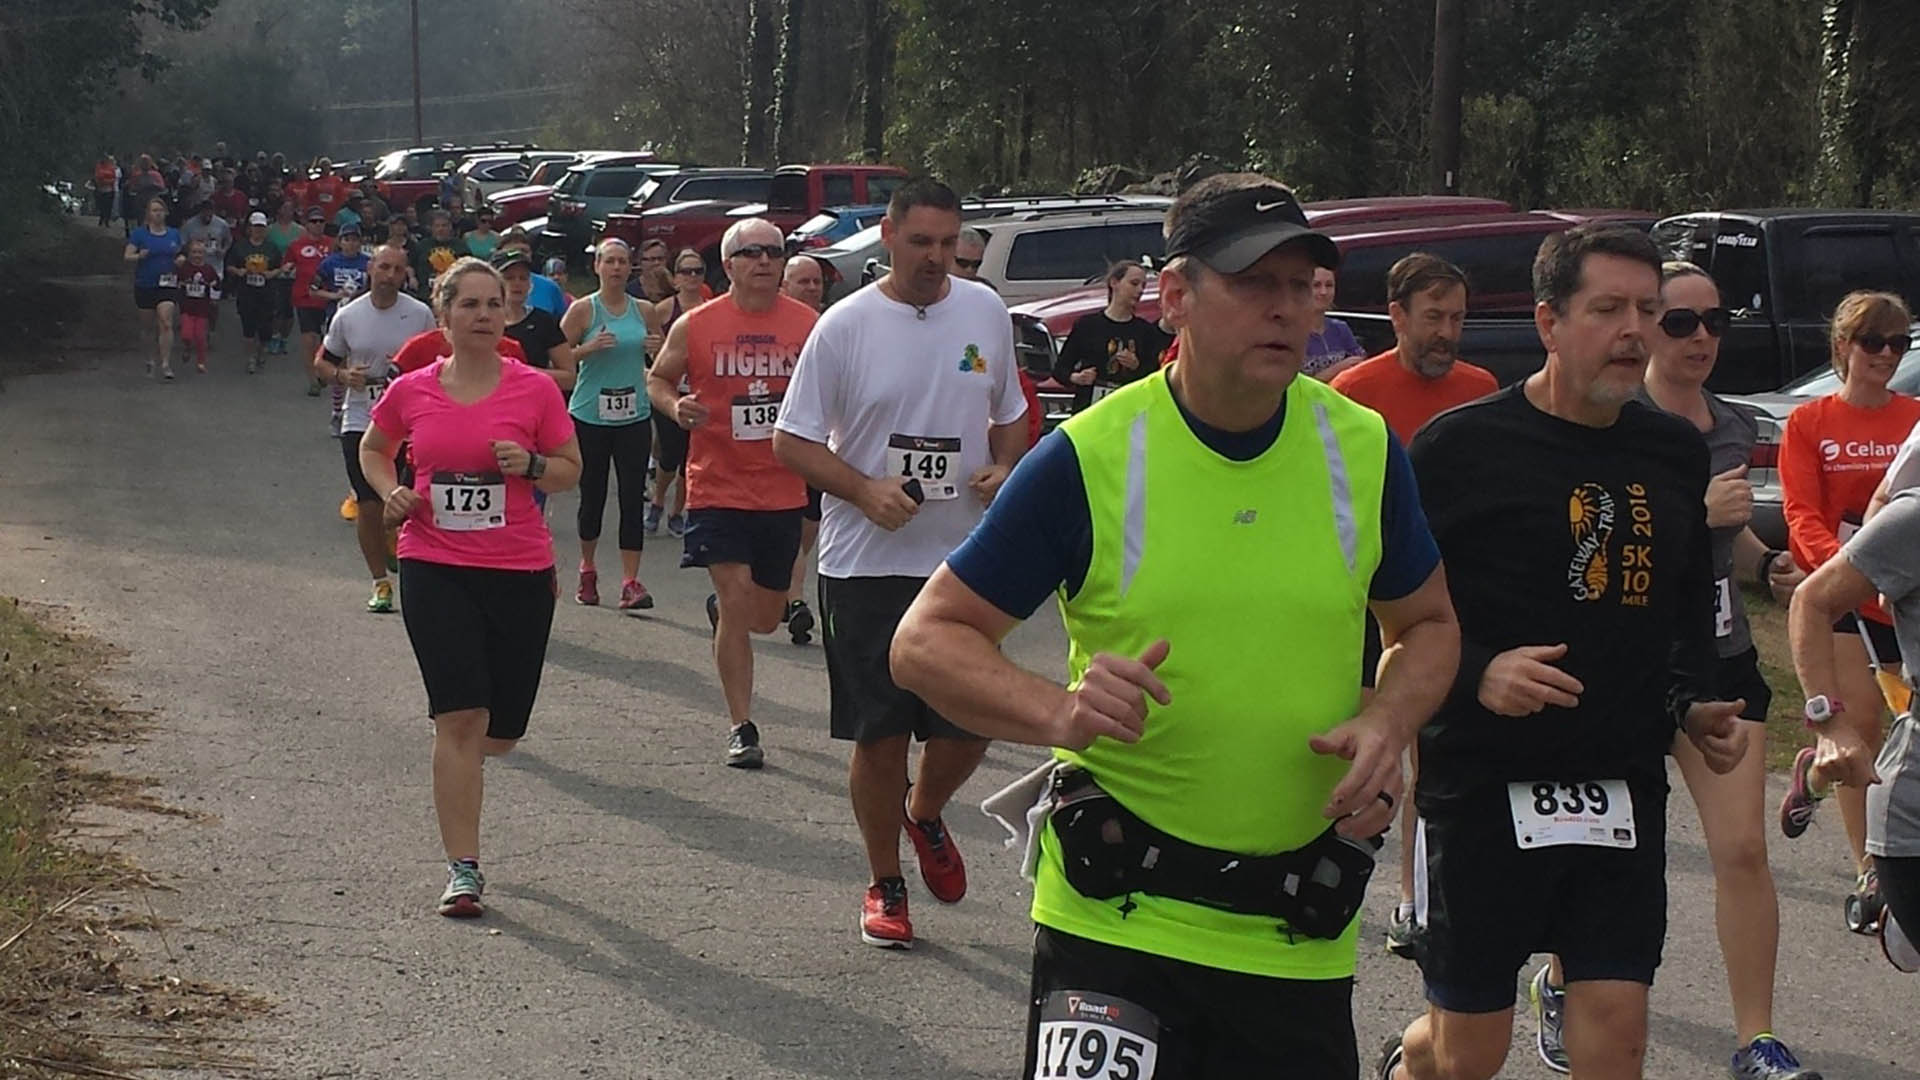 Kings Mountain Gateway Trail - 5K Run